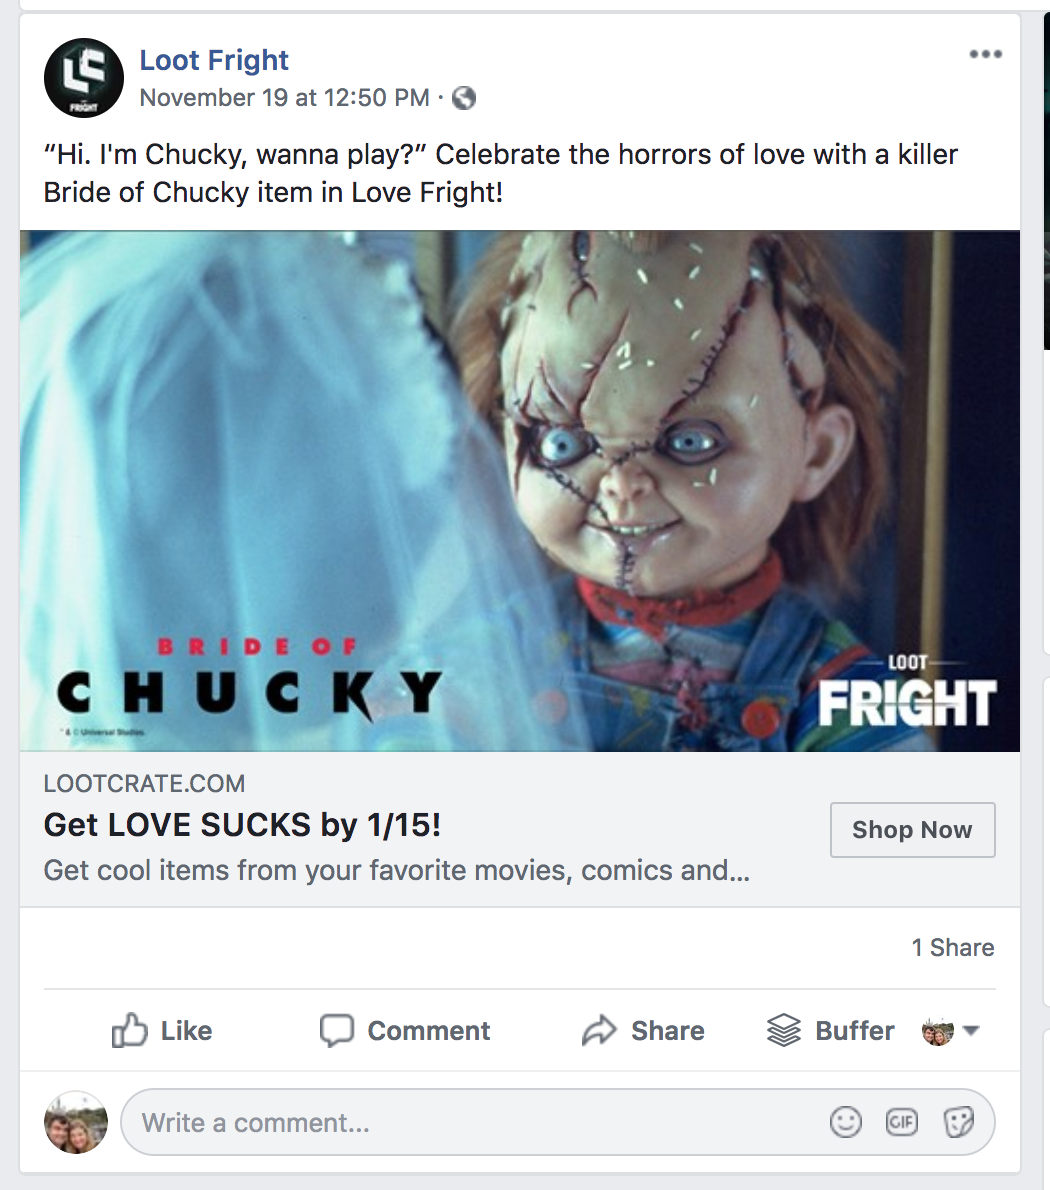 Loot Fright Facebook ad